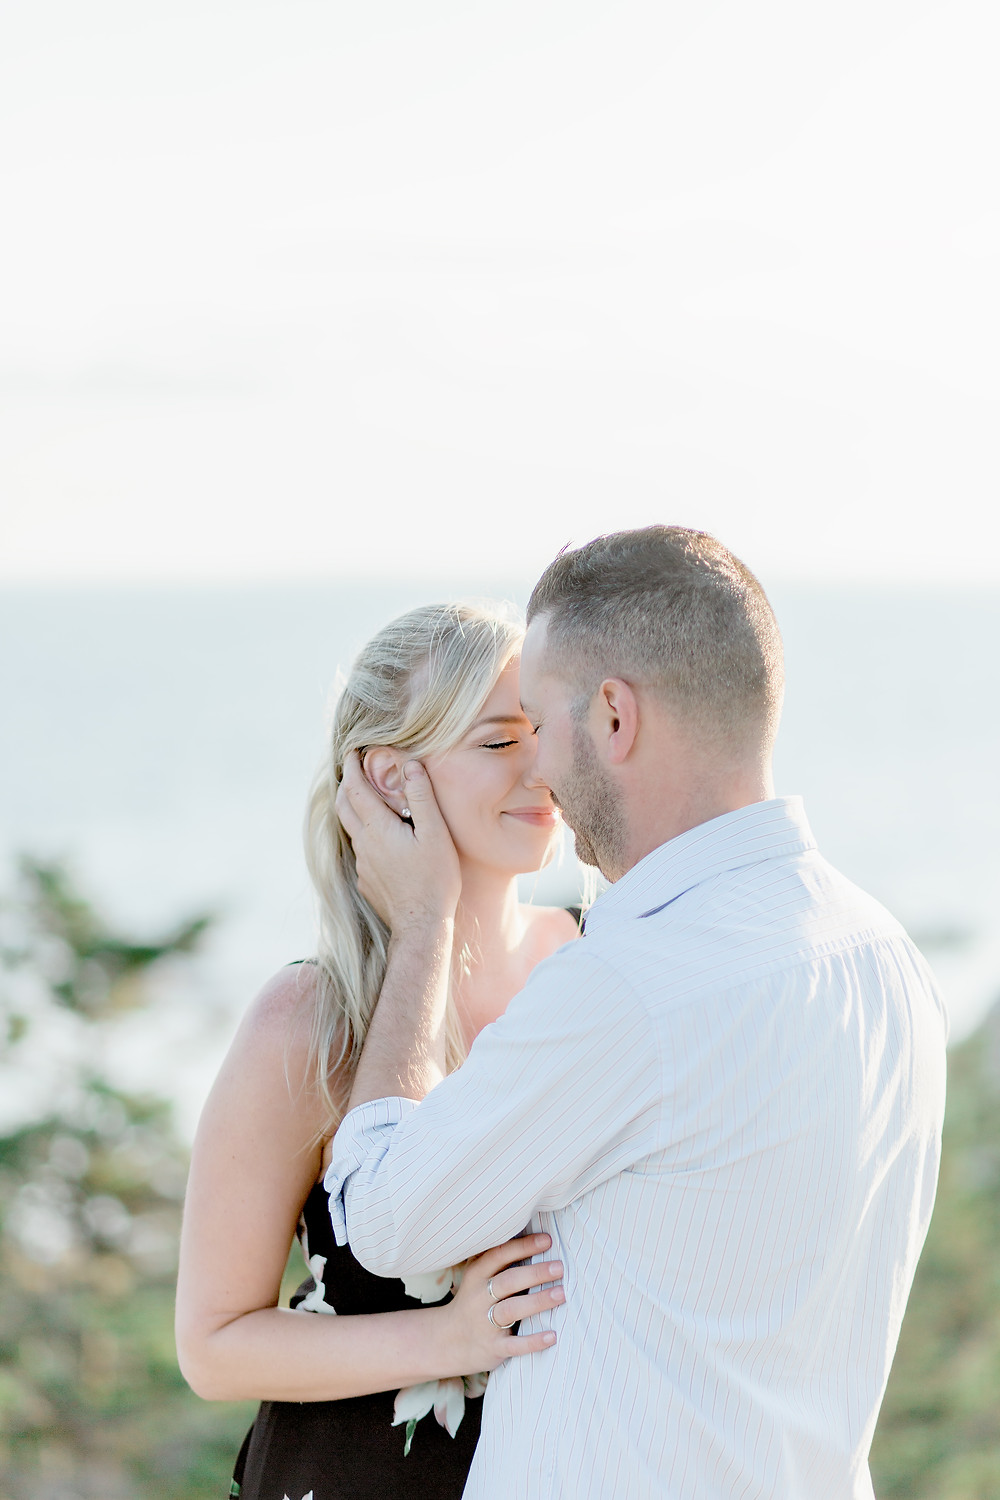 tale of tulle, canadian weddings, nova scotia weddings, cliffside engagement, summer engagement inspo, engagement photos, halifax weddings, halifax photographer, weddings of nova scotia, halifax wedding vendors, what to wear for engagement photos, light and airy photography